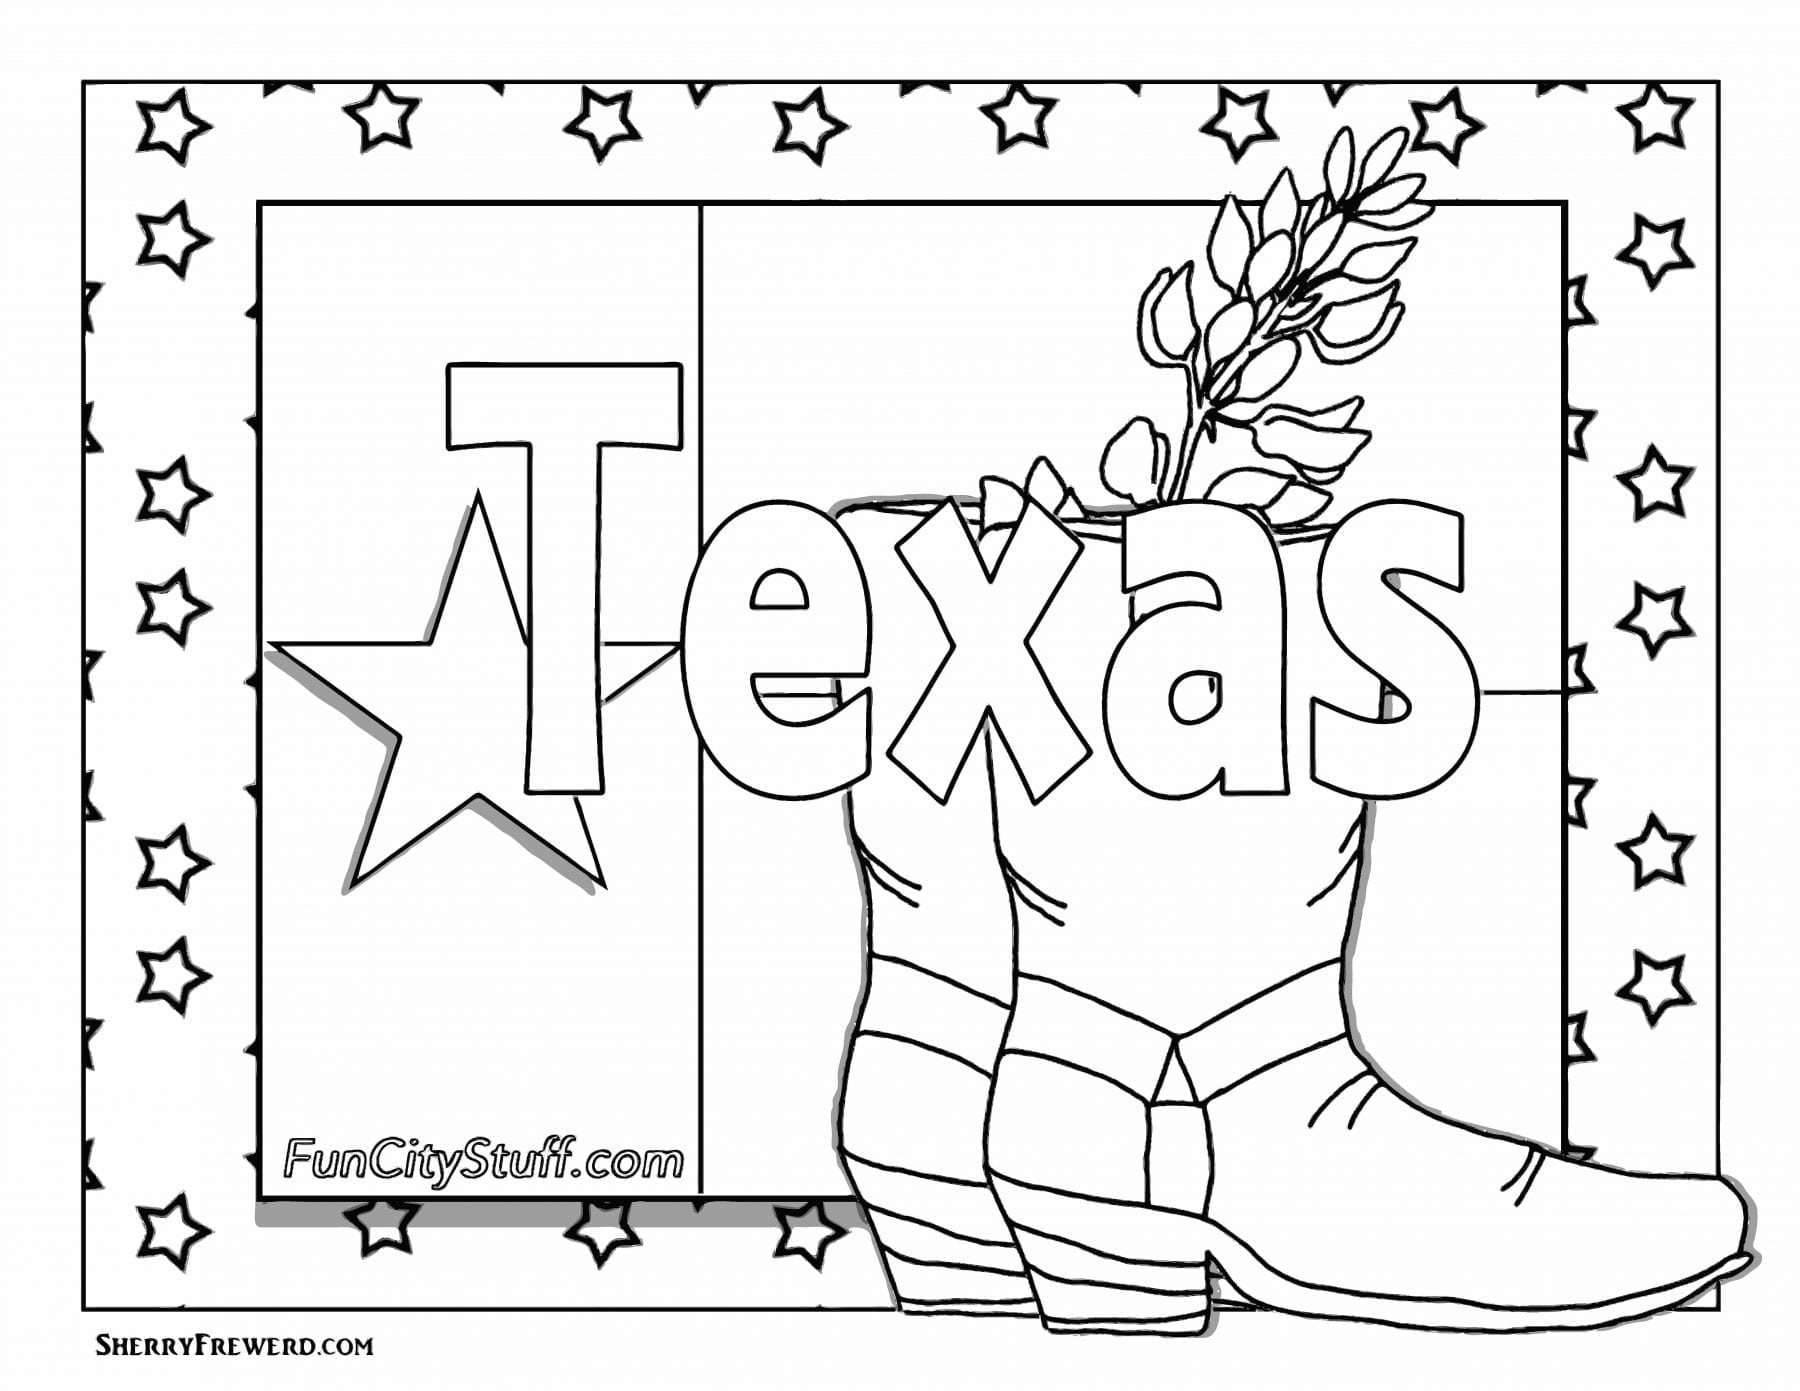 texas coloring pages color your cares away texas style funcity stuff dfw texas coloring pages